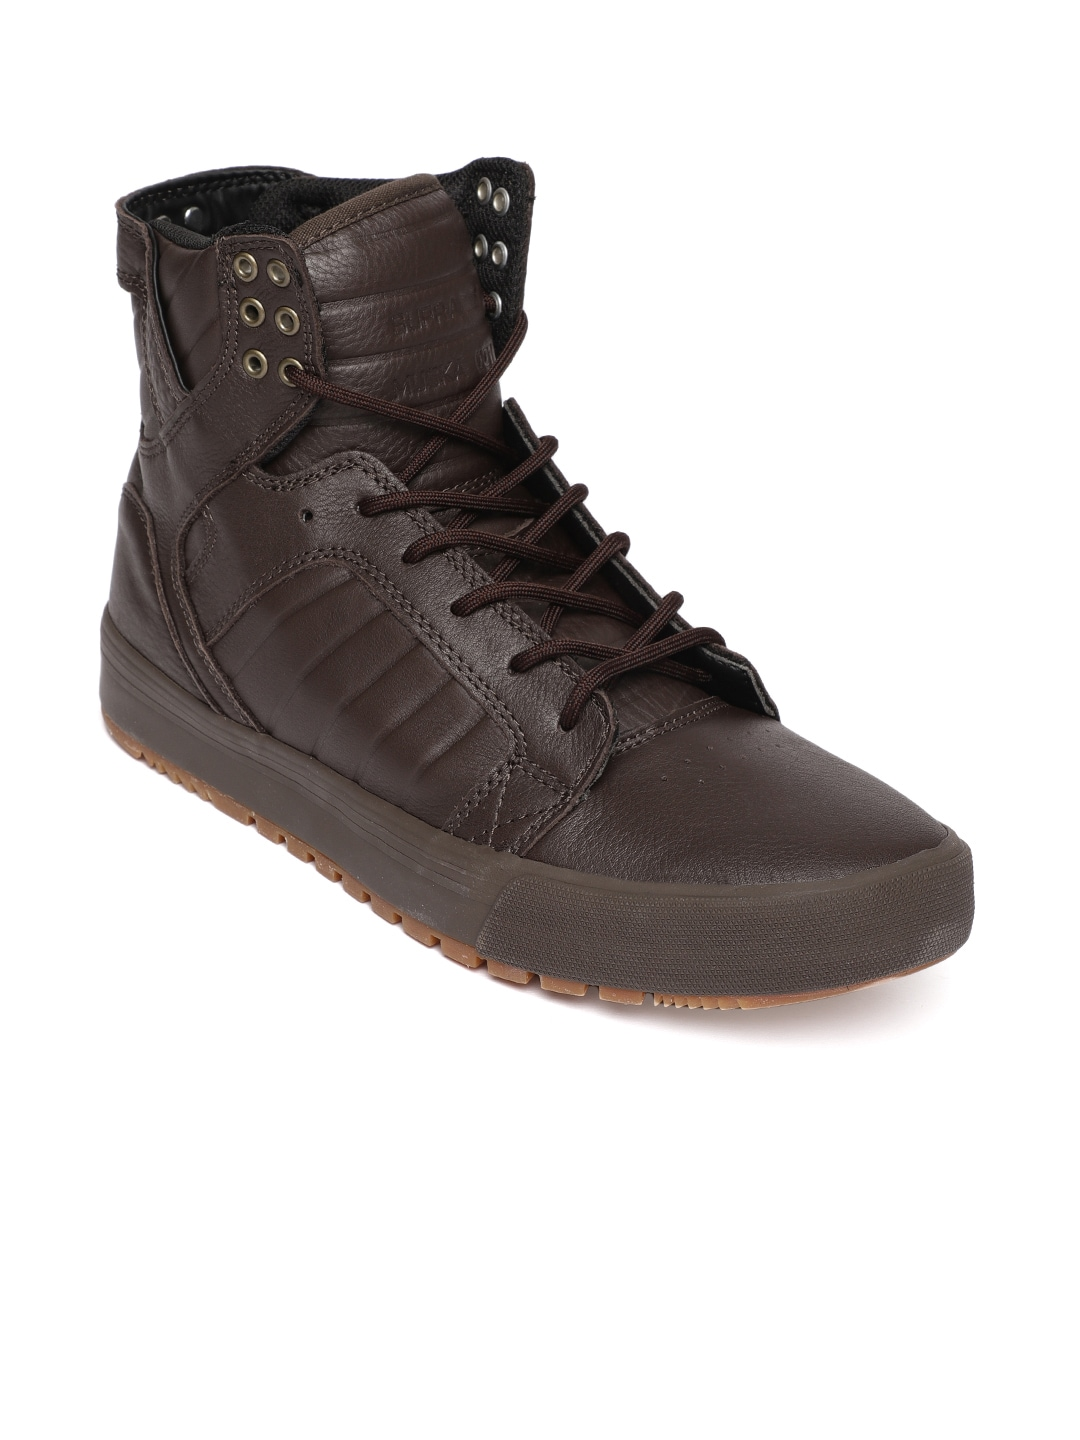 6bbfc45550 Supra High Tops Footwear - Buy Supra High Tops Footwear online in India